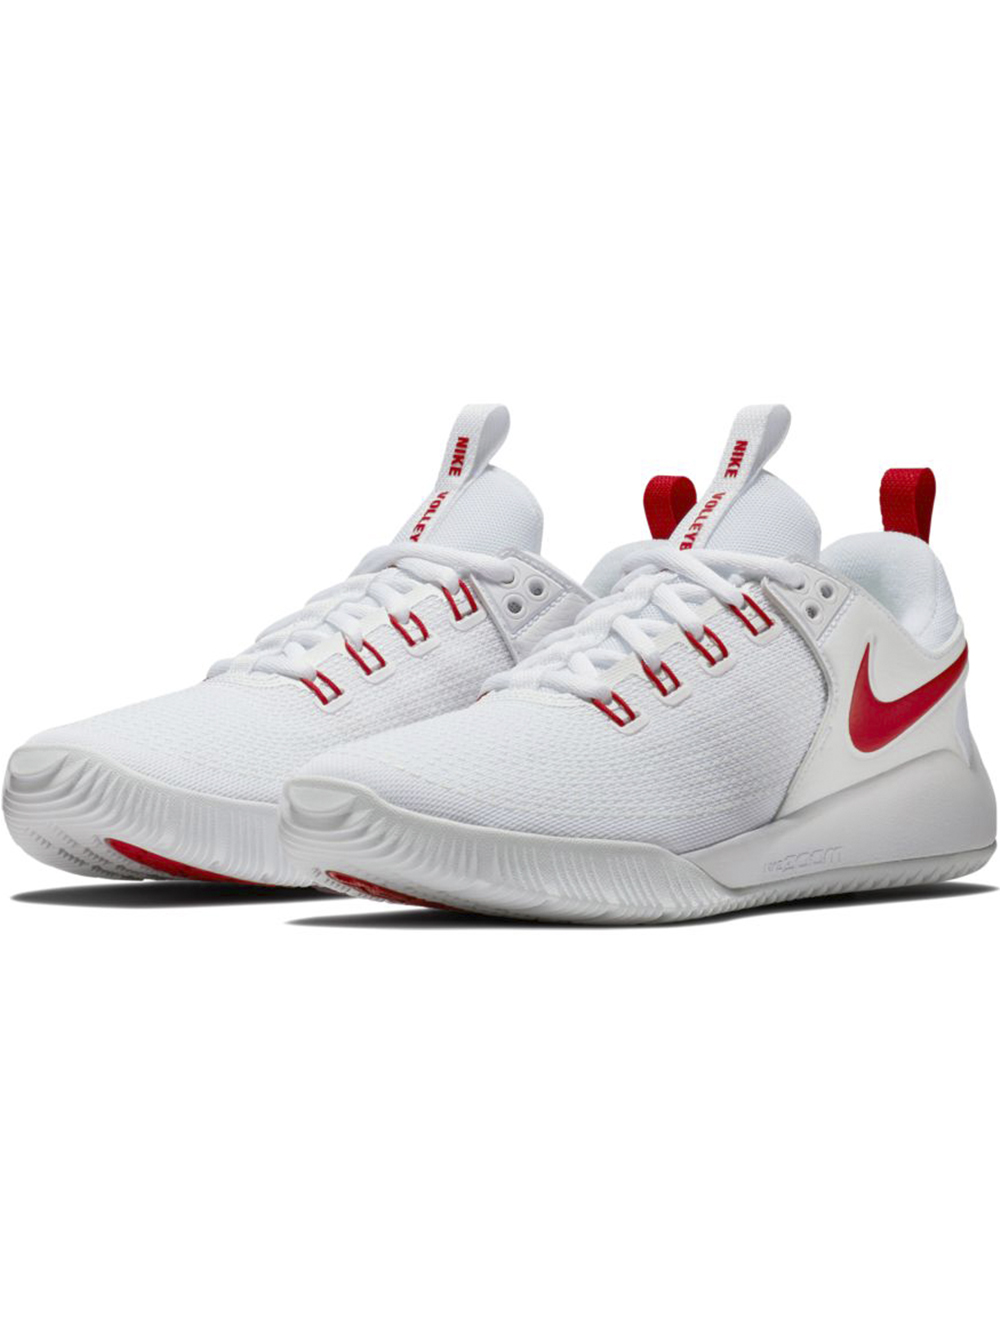 Women's Nike Zoom HyperAce 2 Shoes WhiteRed | Midwest Volleyball Warehouse